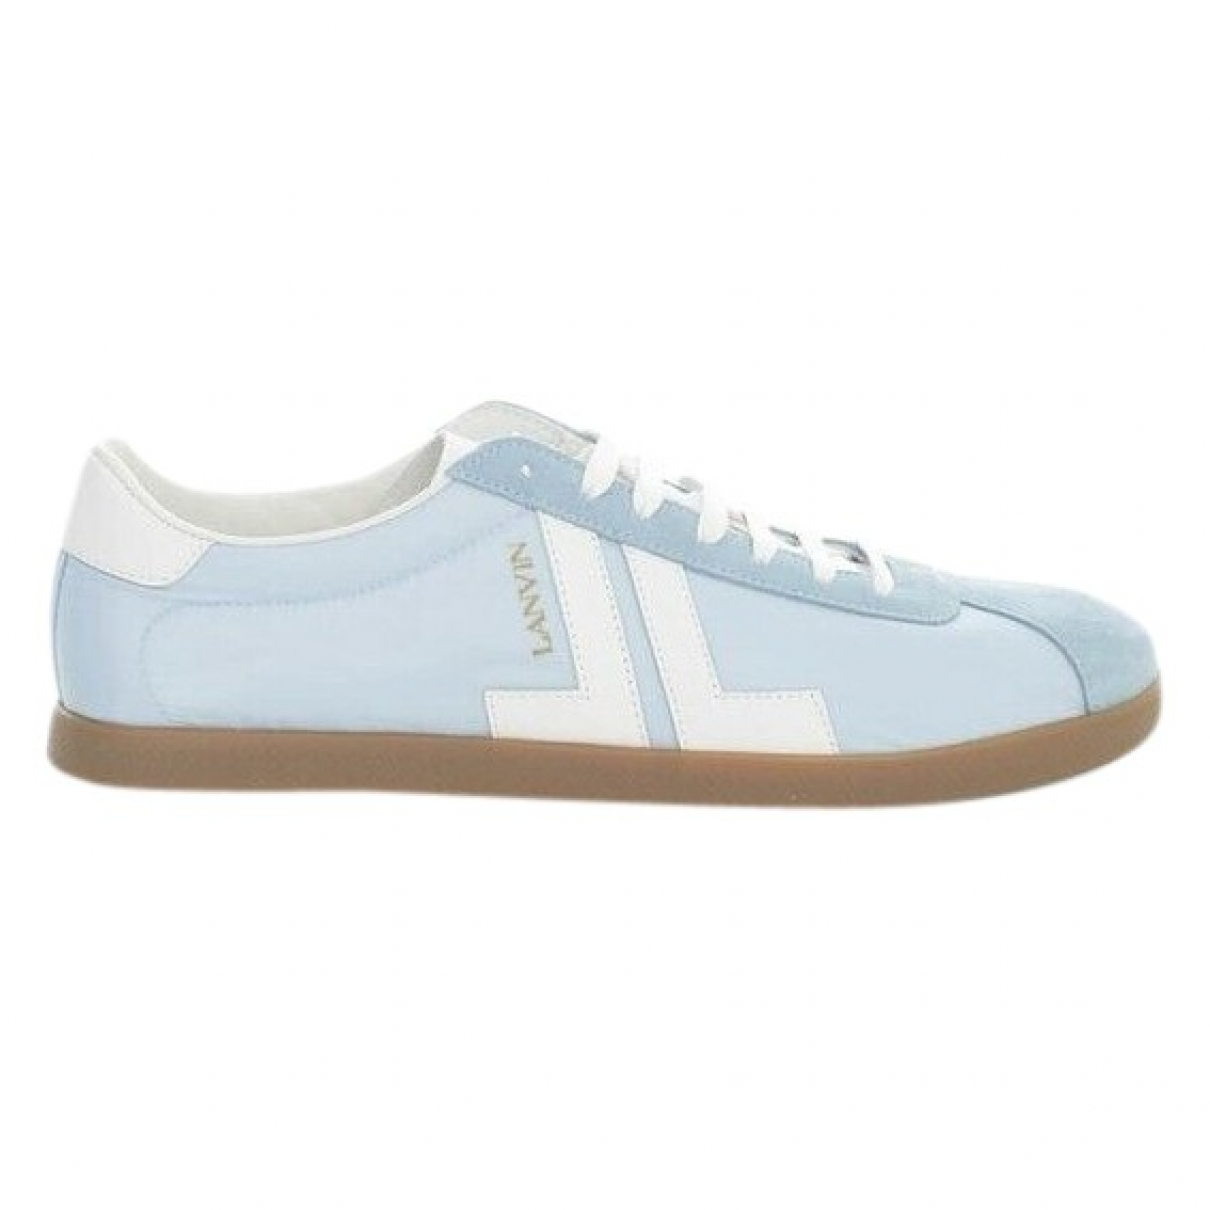 Lanvin \N Blue Leather Trainers for Men 39 EU